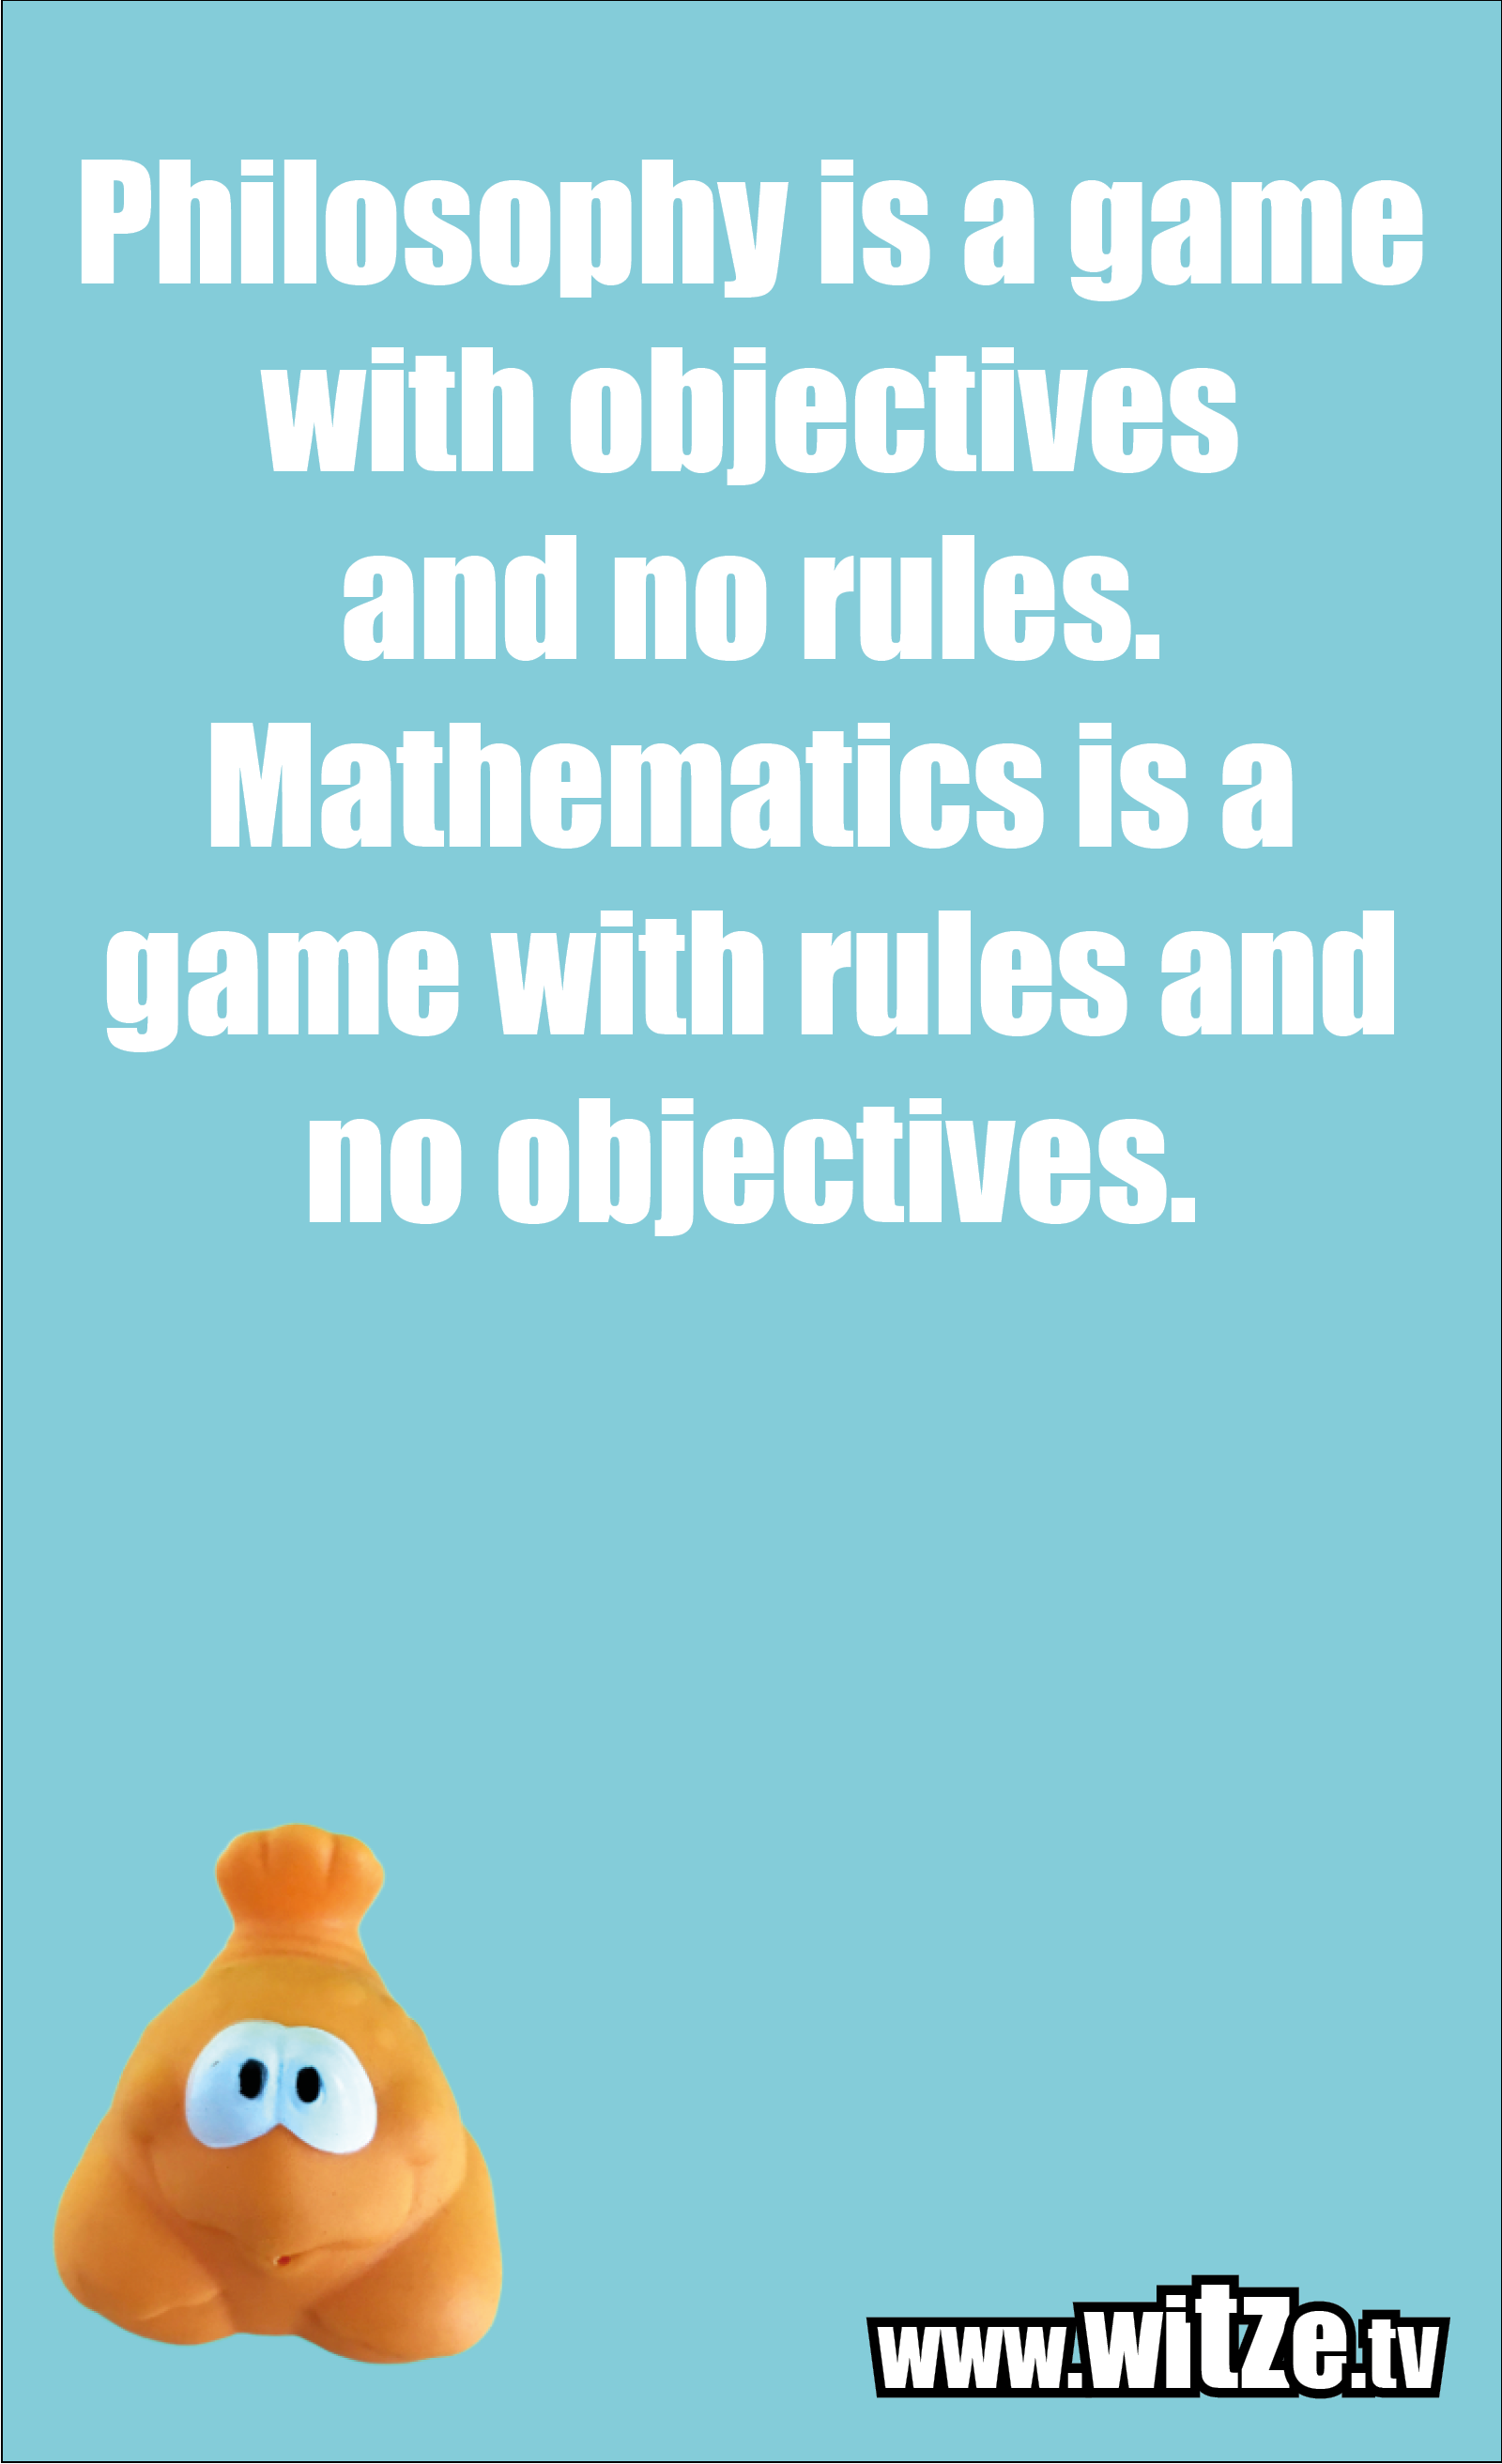 Math joke… Philosophy is a game with objectives and no rules. Mathematics is a game with rules and no objectives.